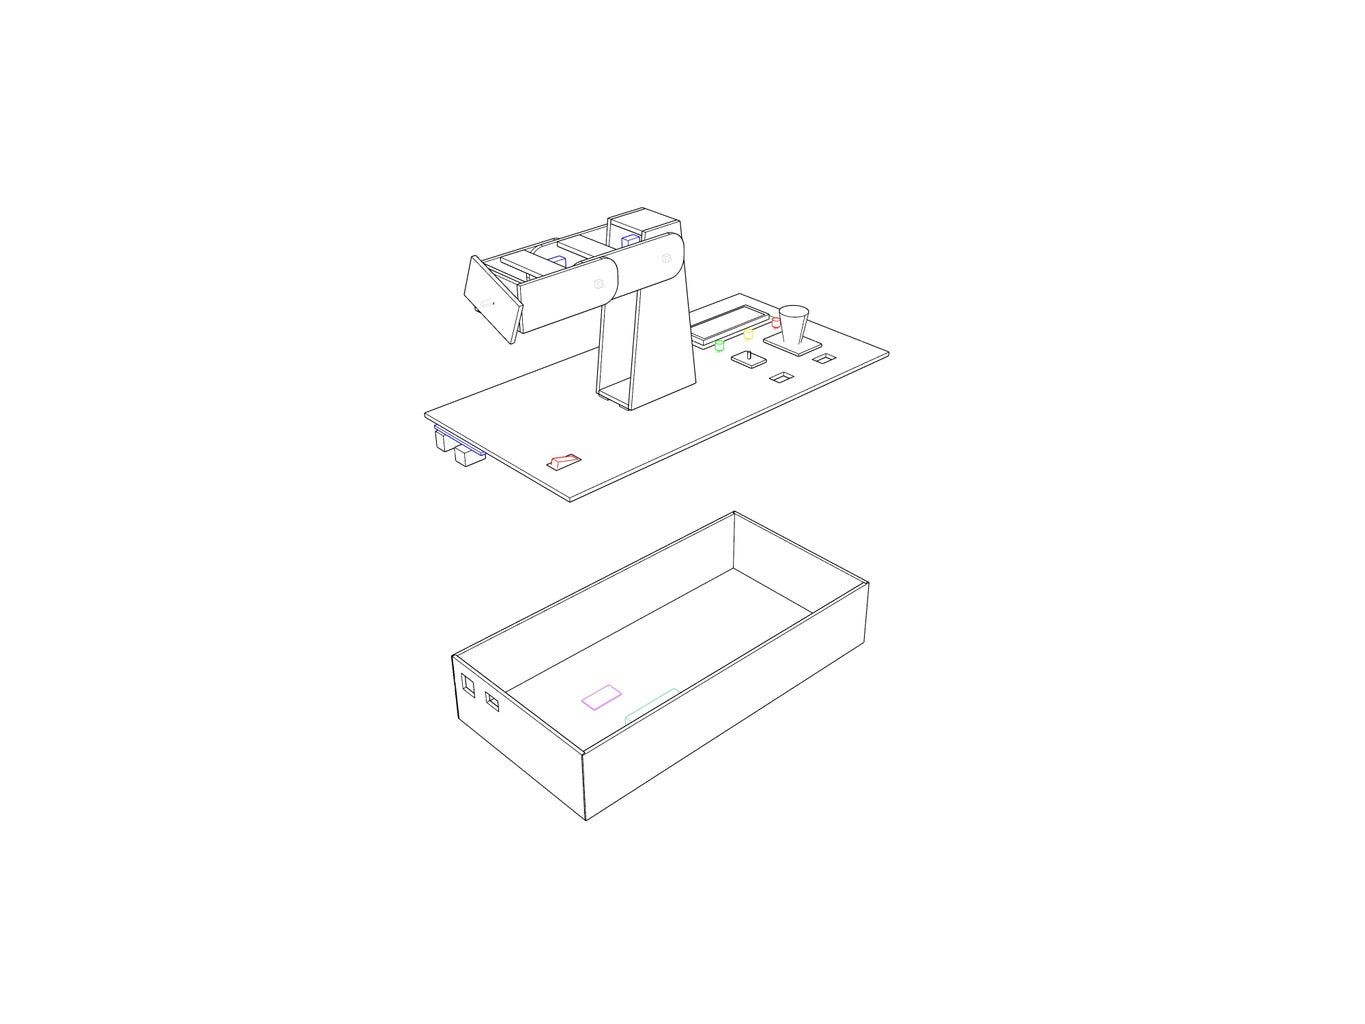 Design, Fabrication and Assembly